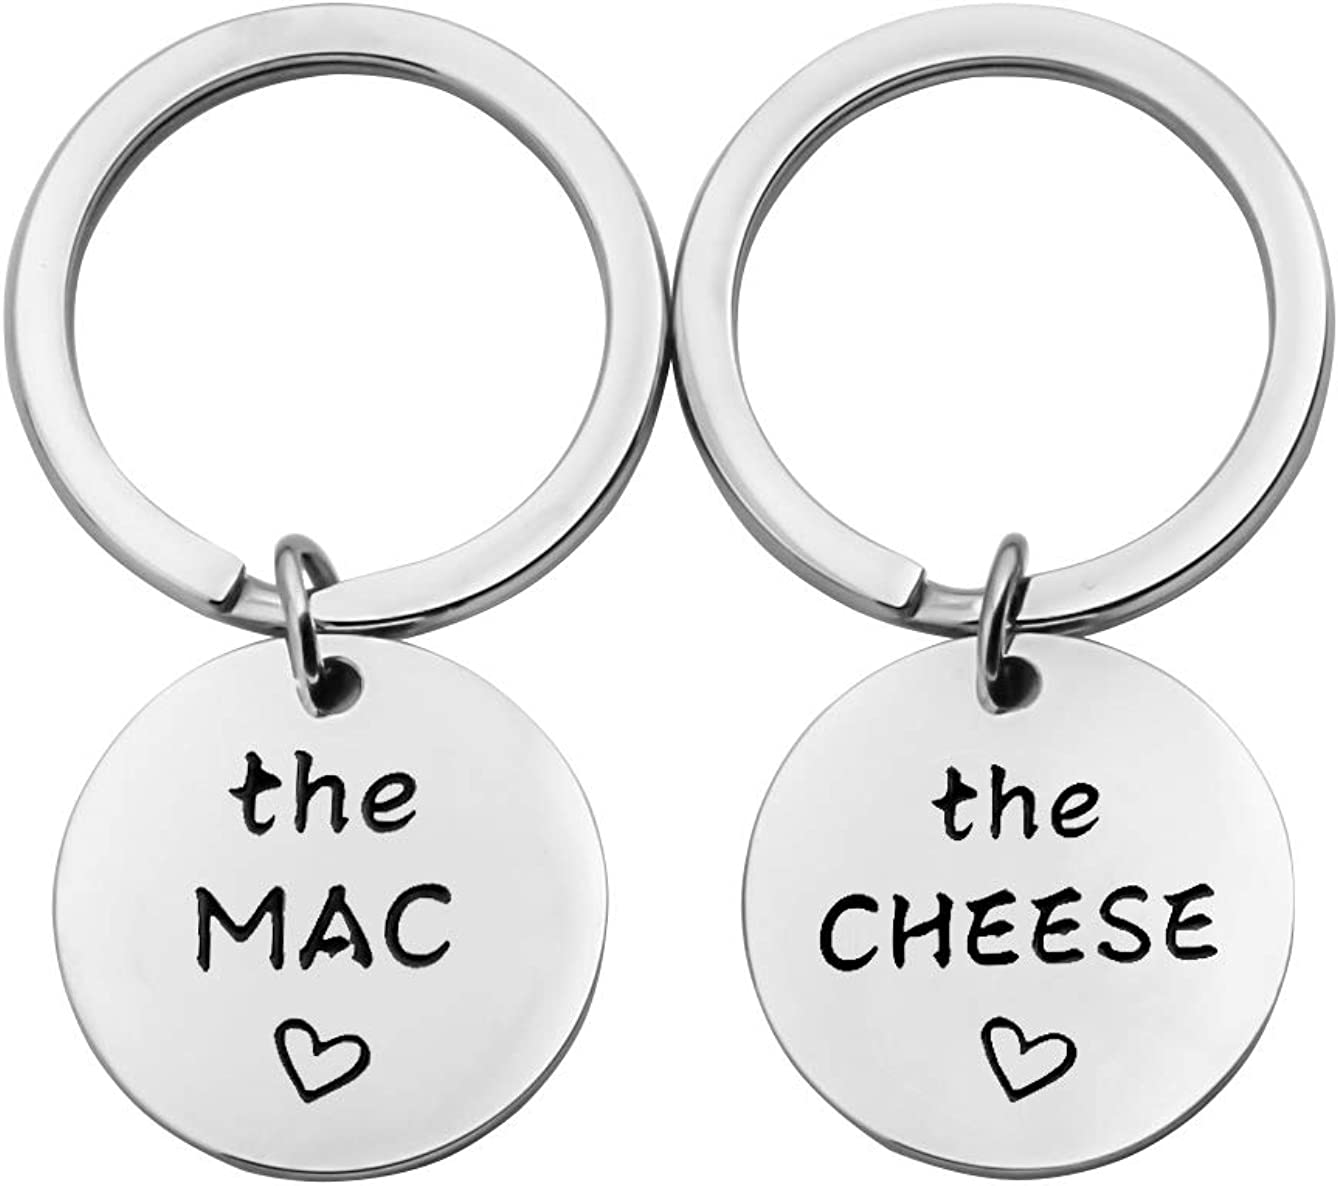 SEIRAA The Mac The Cheese Keychain Food Jewelry Couple Gift Macaroni And Cheese Jewelry Best Friend Gift